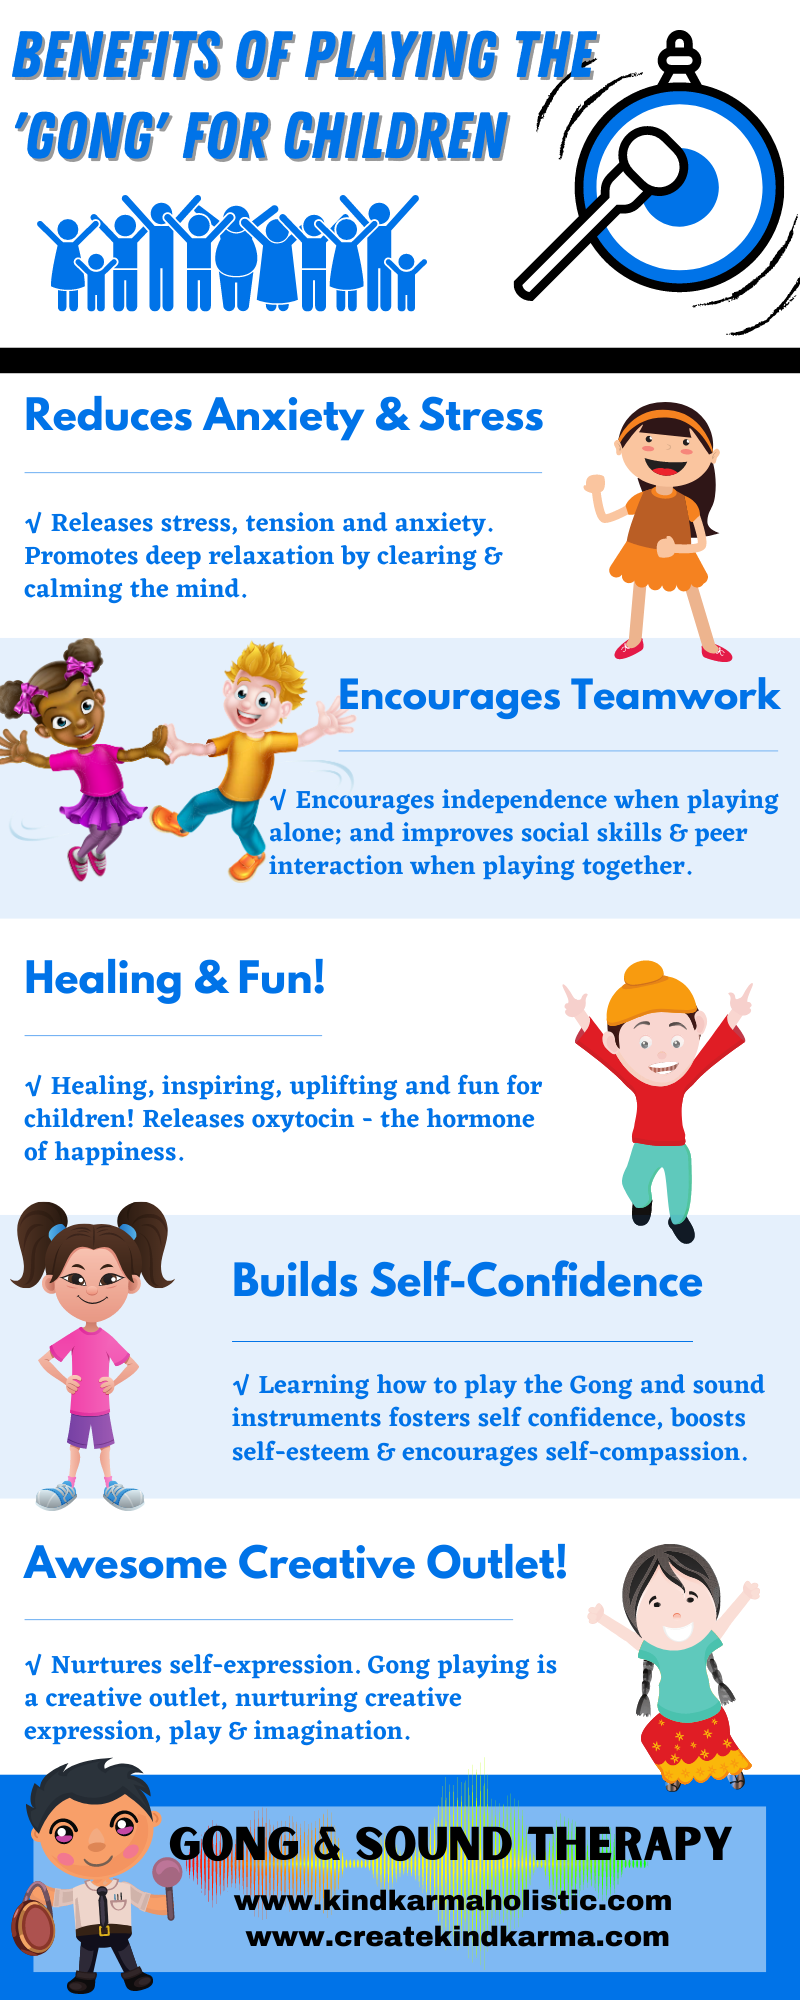 Health benefits of playing the gong for children.